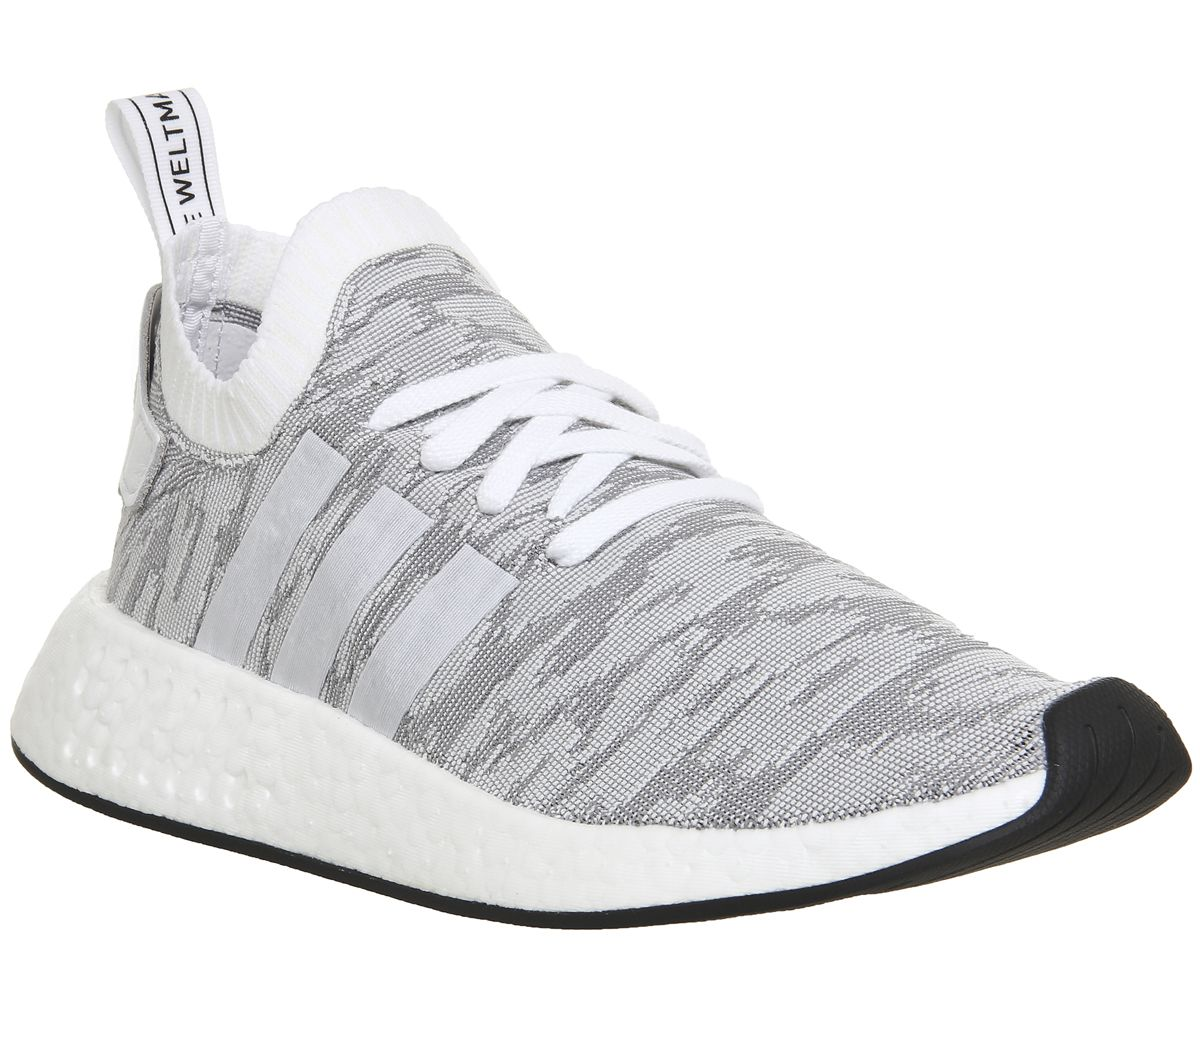 079b0514aea72 adidas Nmd R2 Pk White Black Red - His trainers